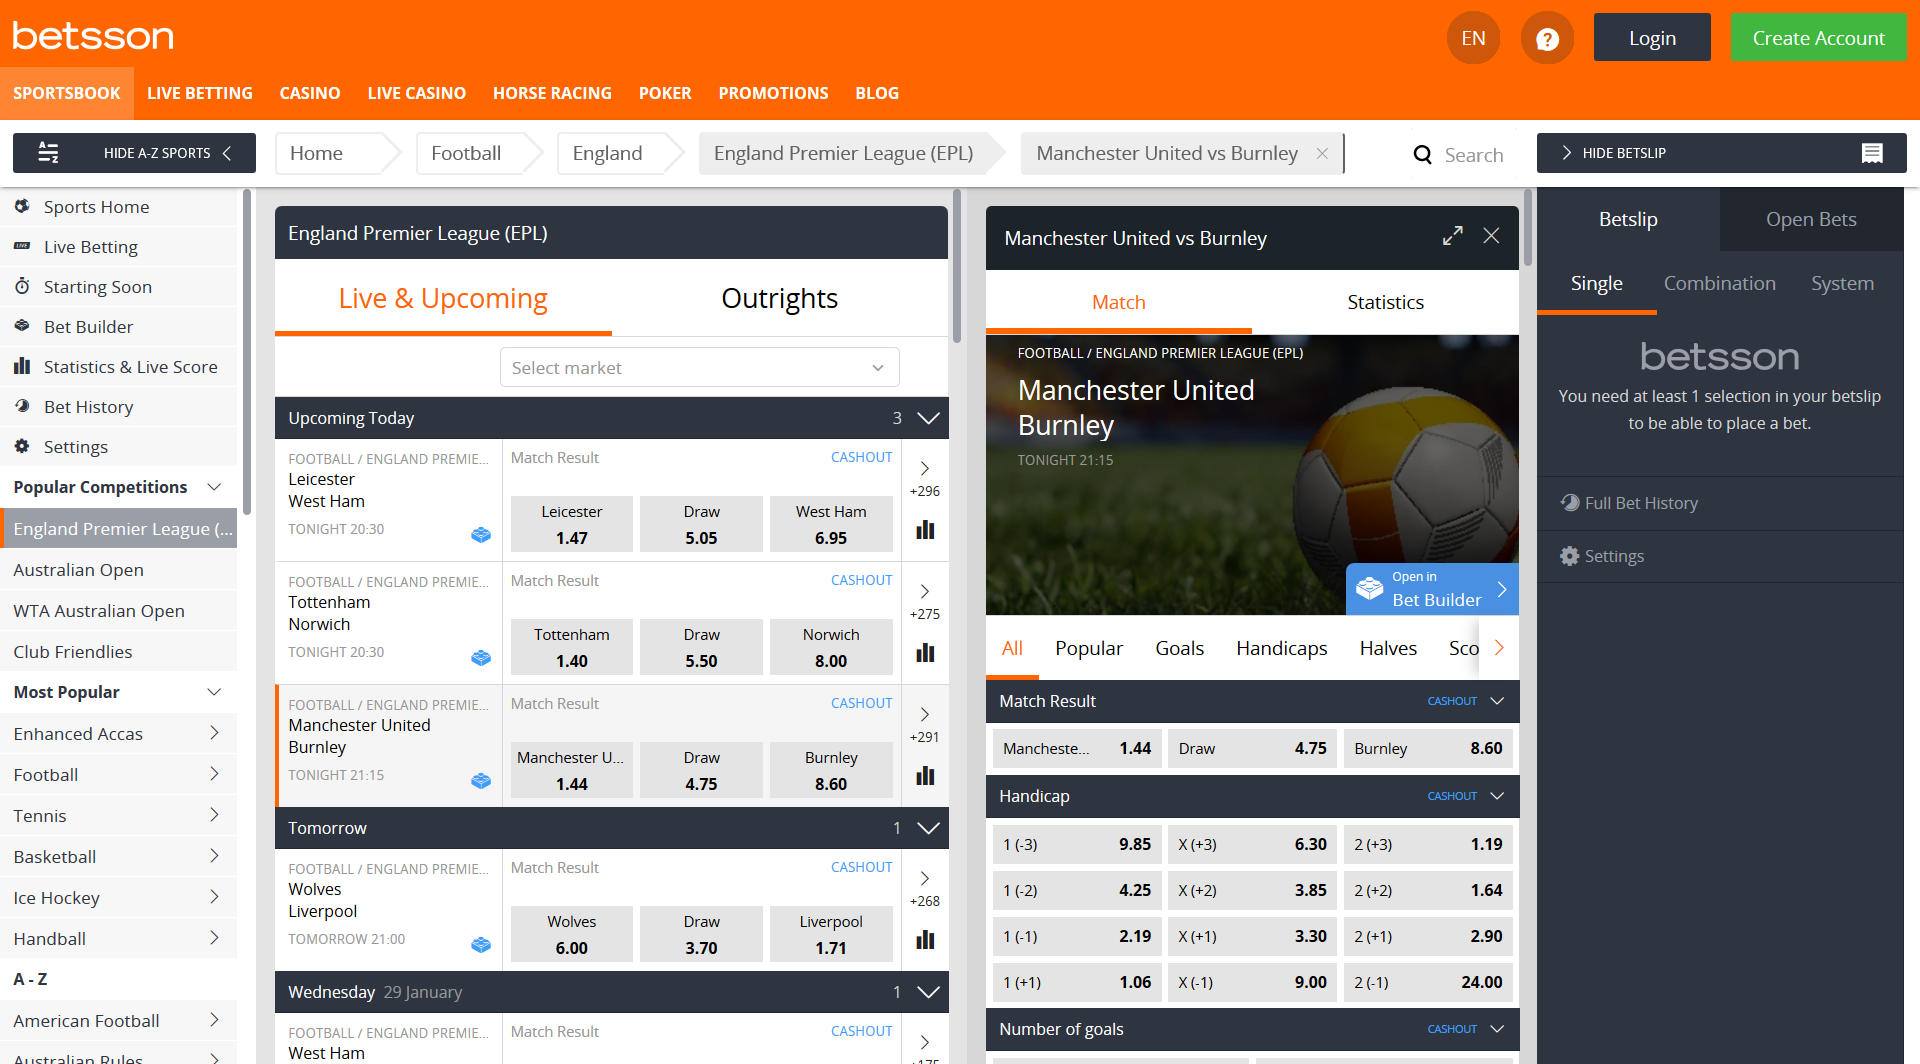 betsson sports betting offer